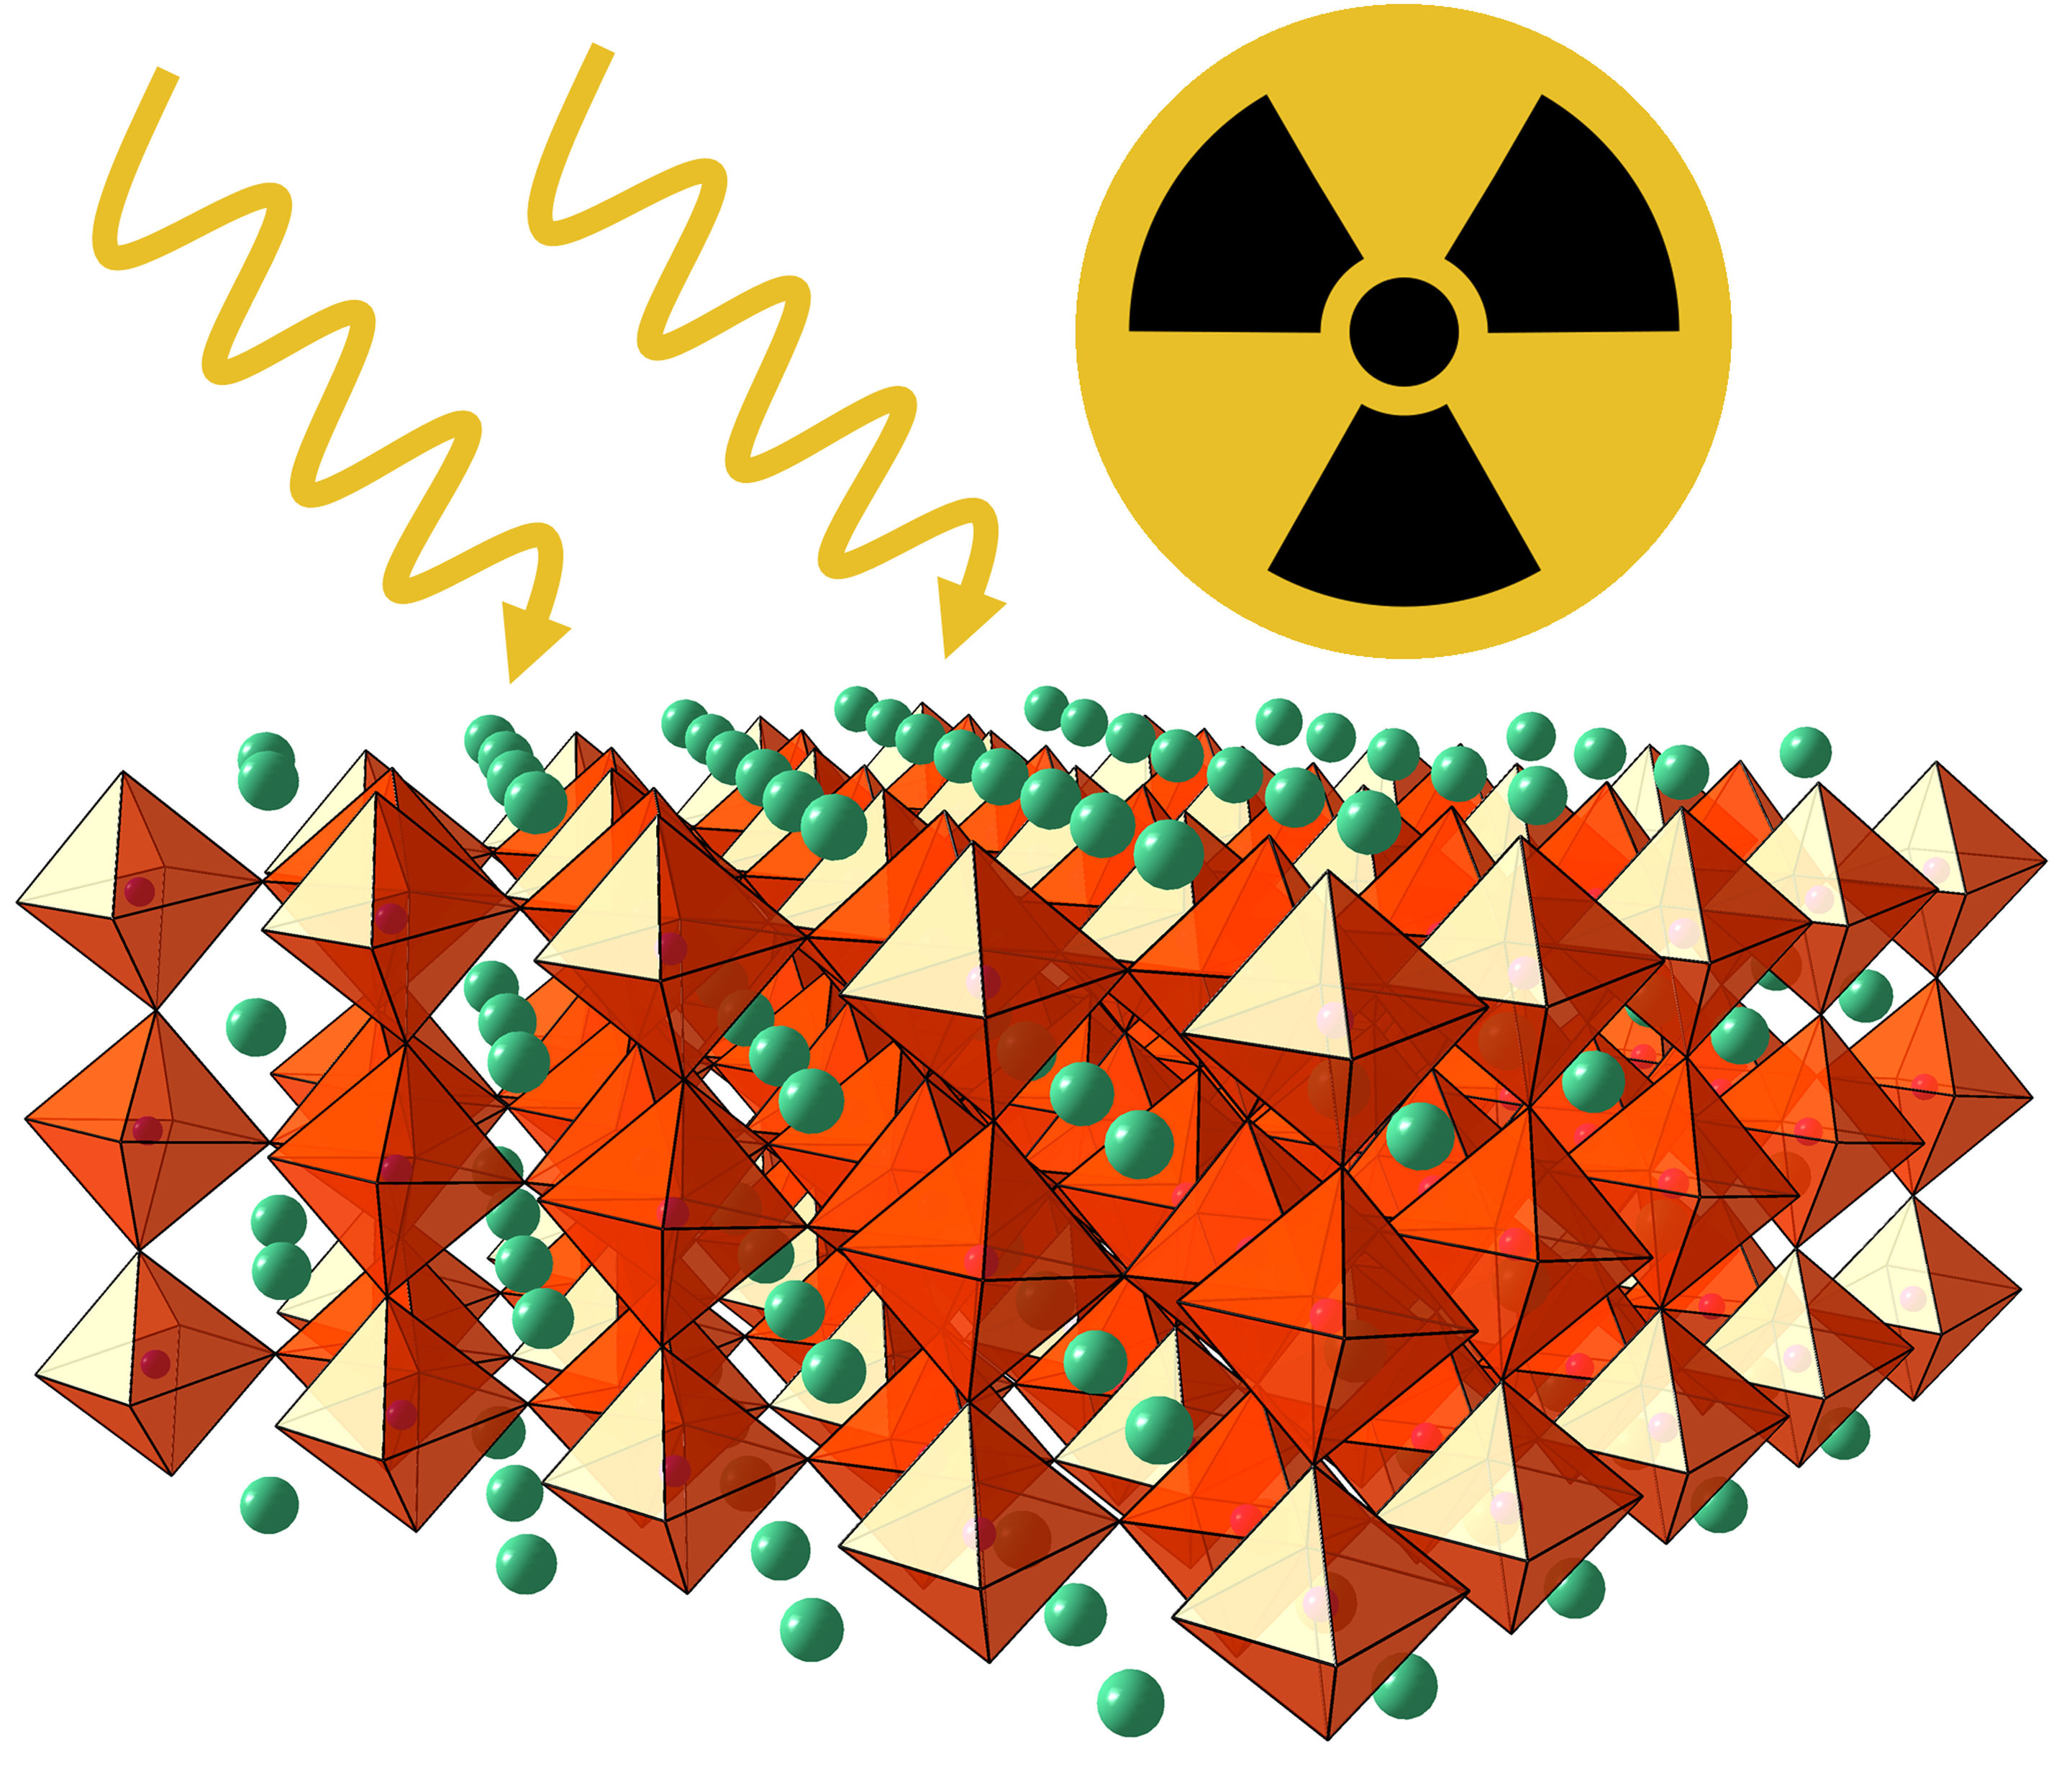 Nuclear Radiation Detecting Device Could Lead To New Homeland Inside A Power Plant Diagram Security Tool